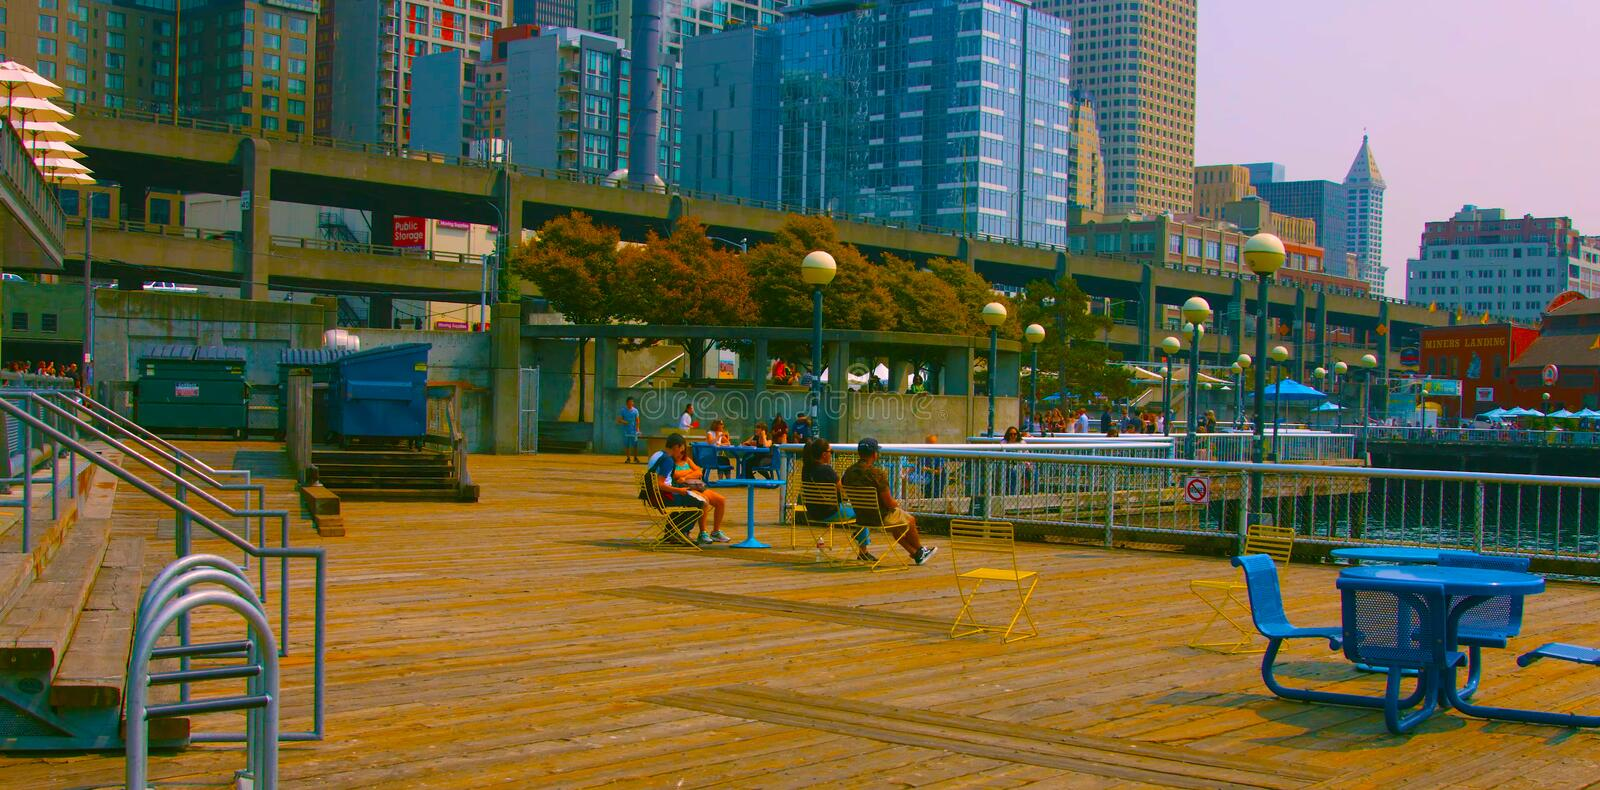 Seaside restaurant at evening in Seattle, Washington, USA mai 9, 2019 Downtown Seattle stock image